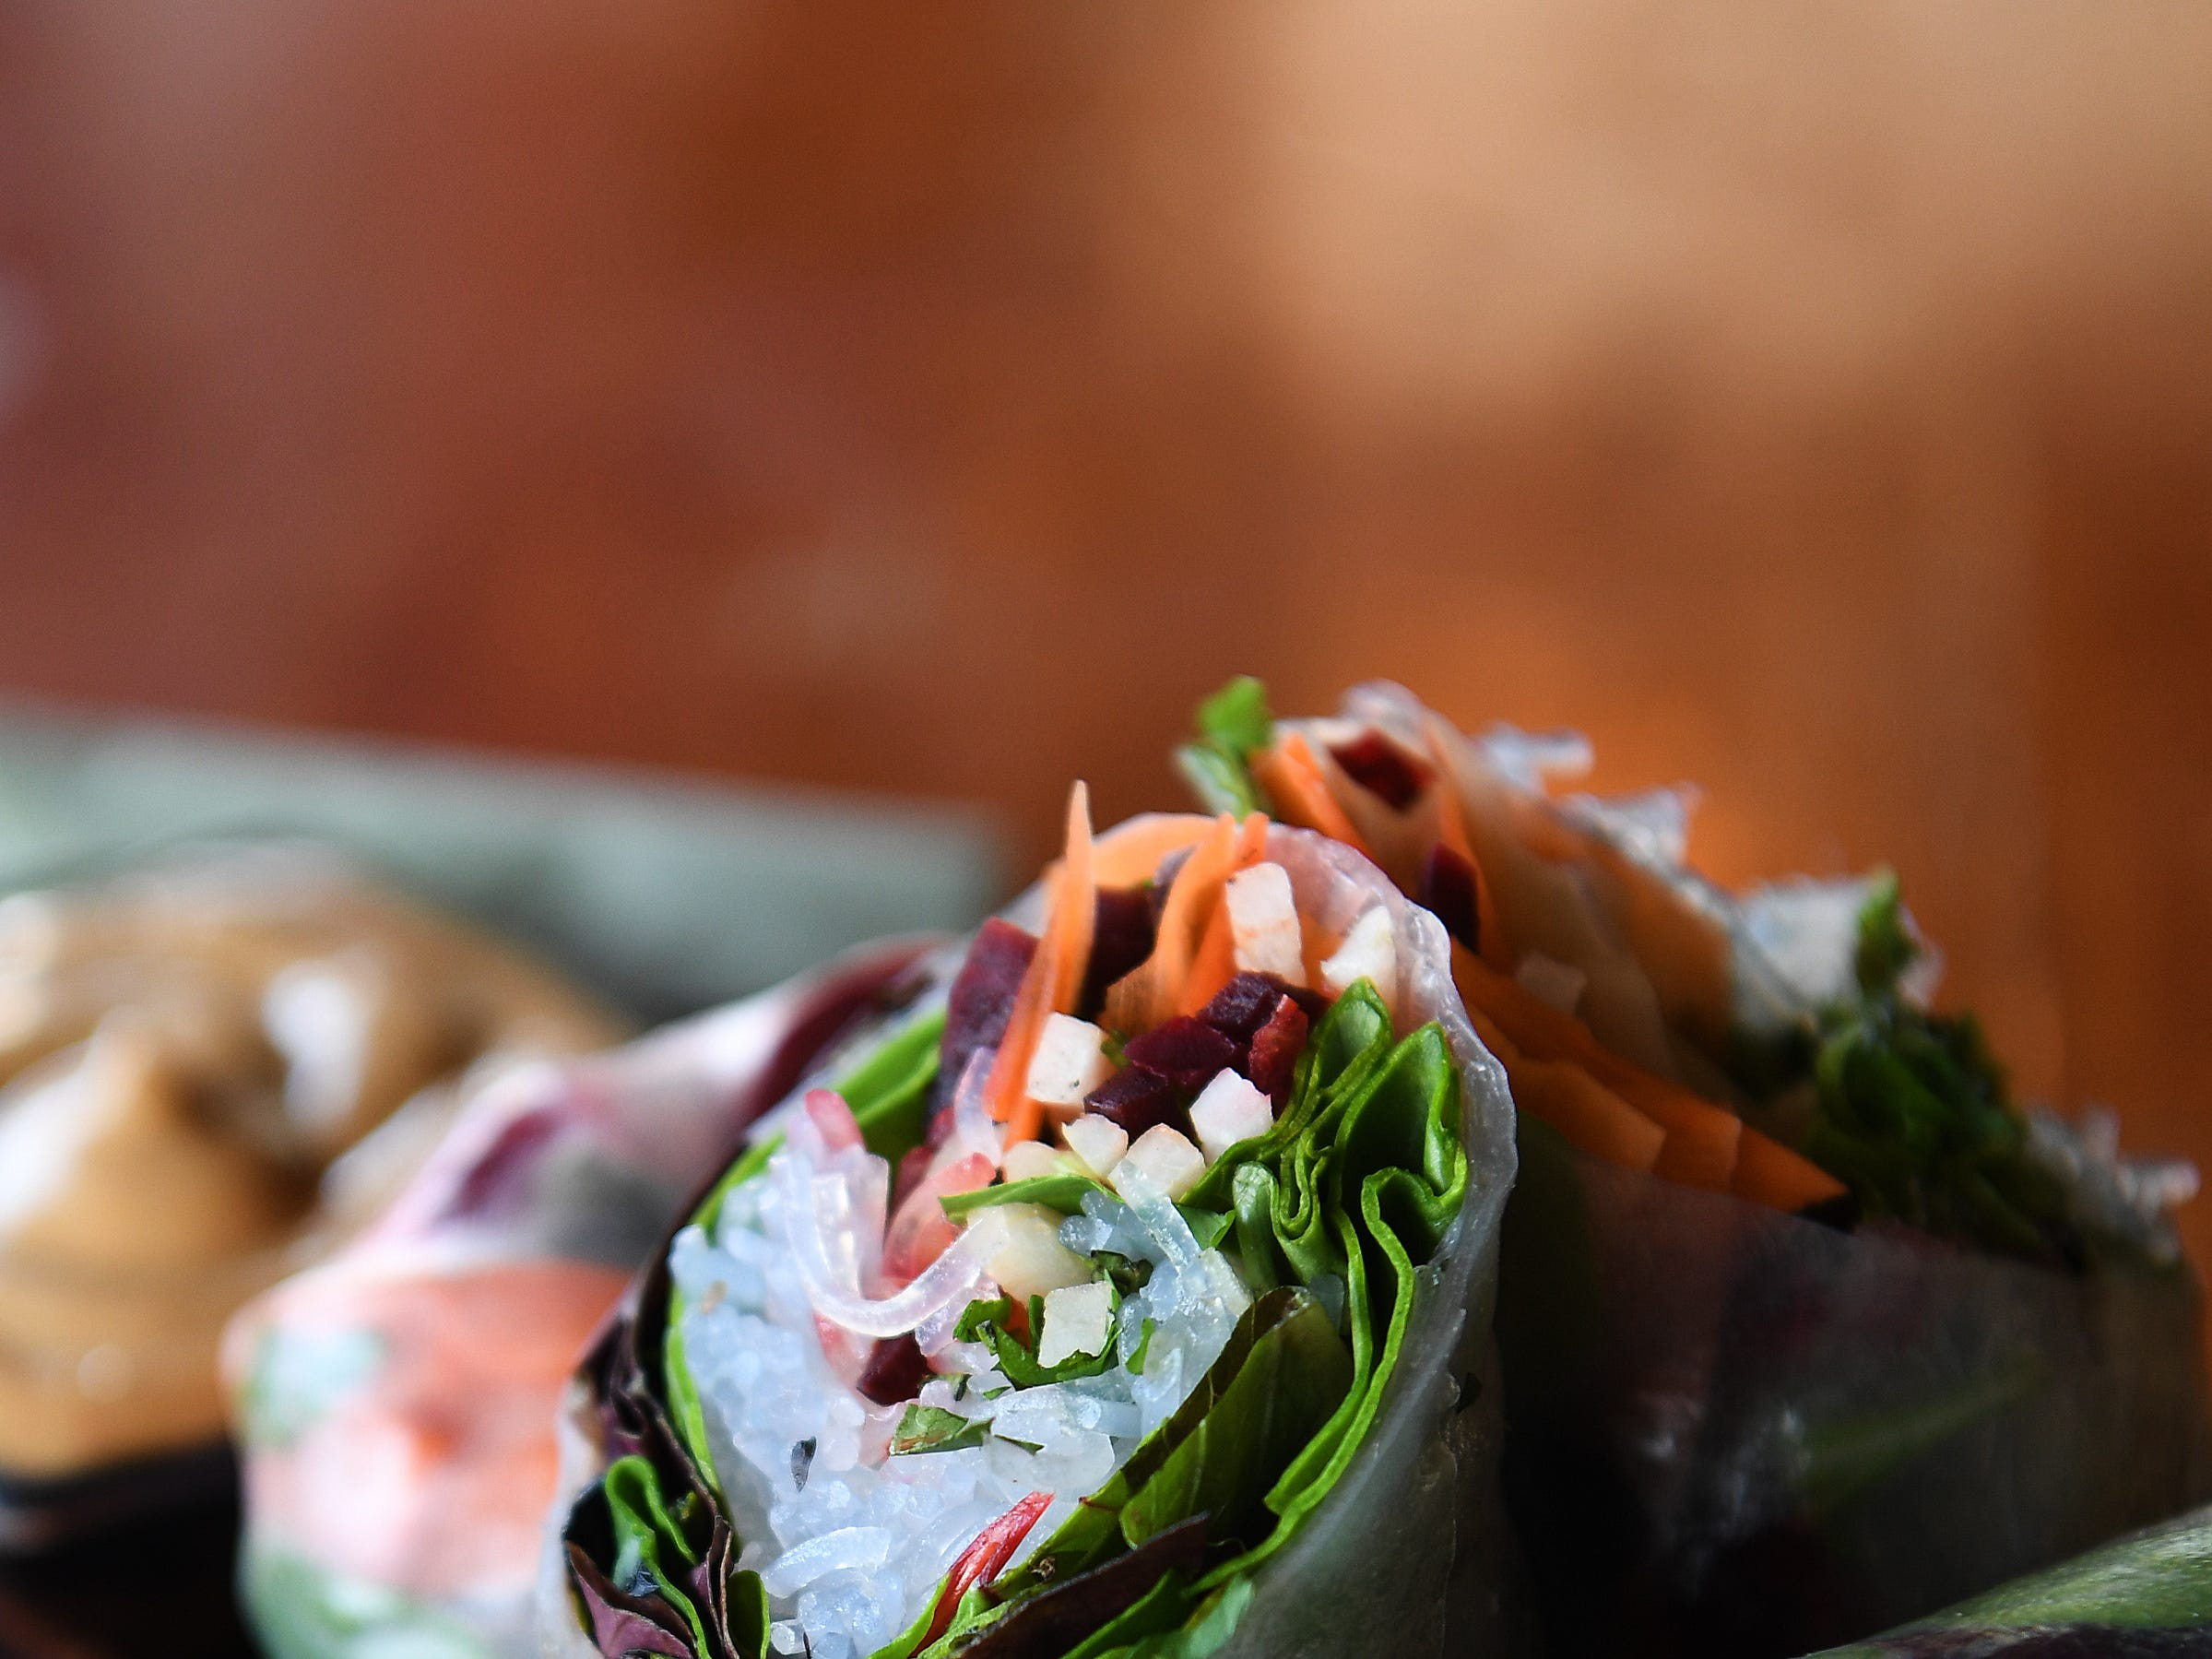 The spring rolls at Dobra Tea's West Asheville location are carrot, beet and daikon wrapped in rice paper with mung bean noodles, fresh mint and cilantro served with peanut sauce.